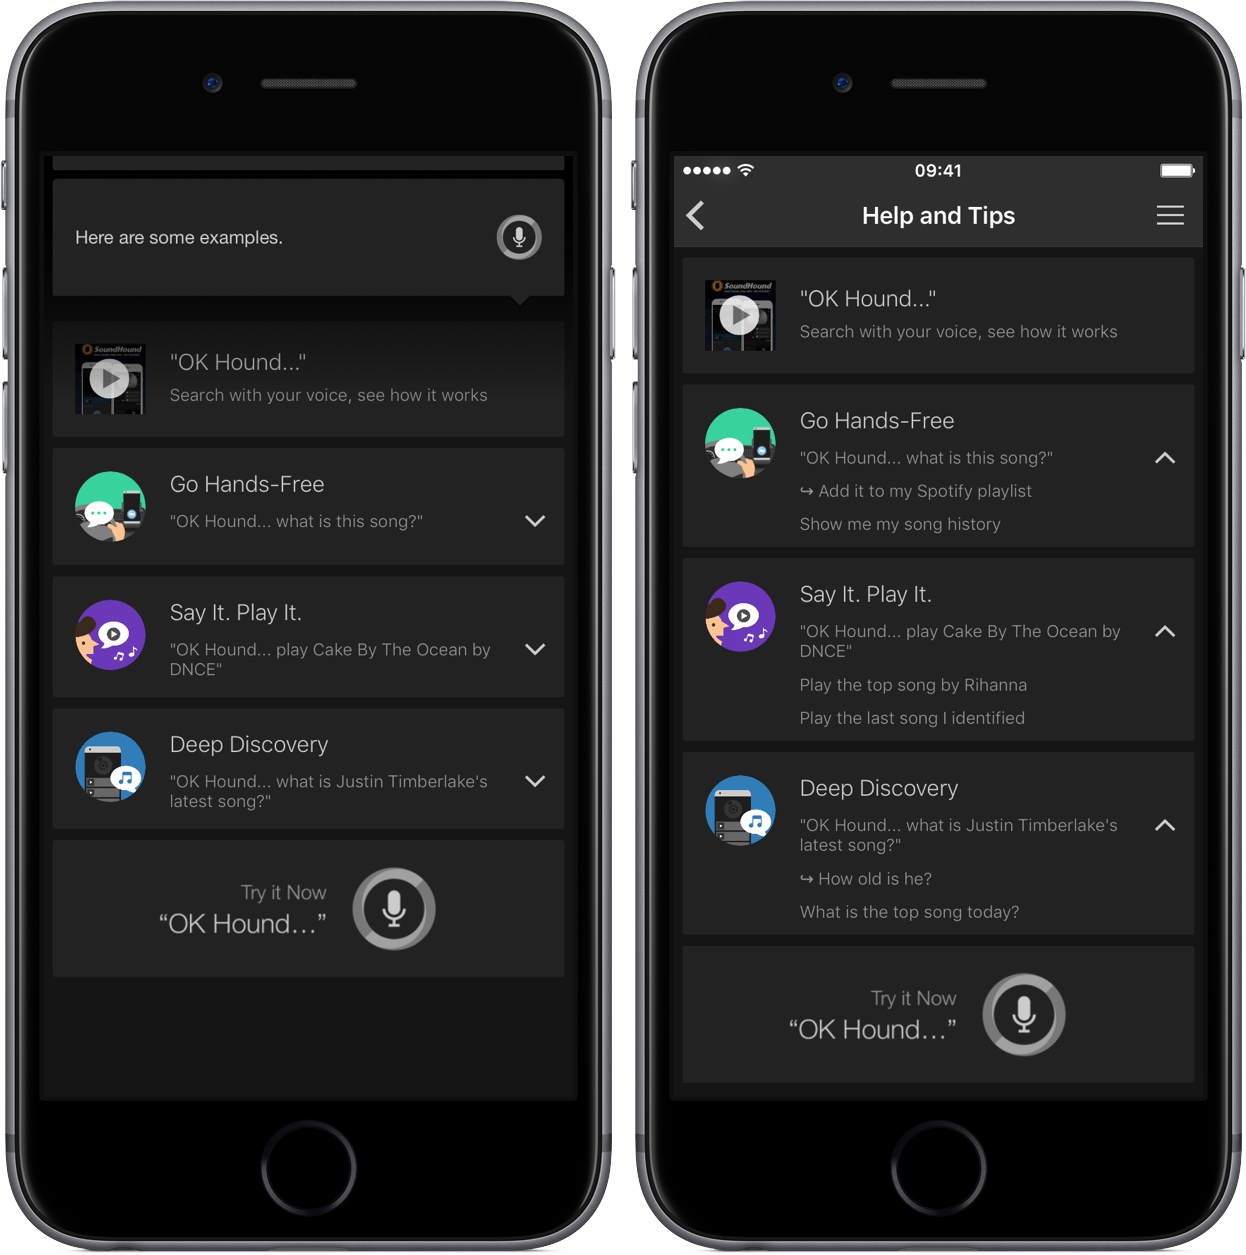 Soundhound 7.1 for iOS iPhone screenshot 001